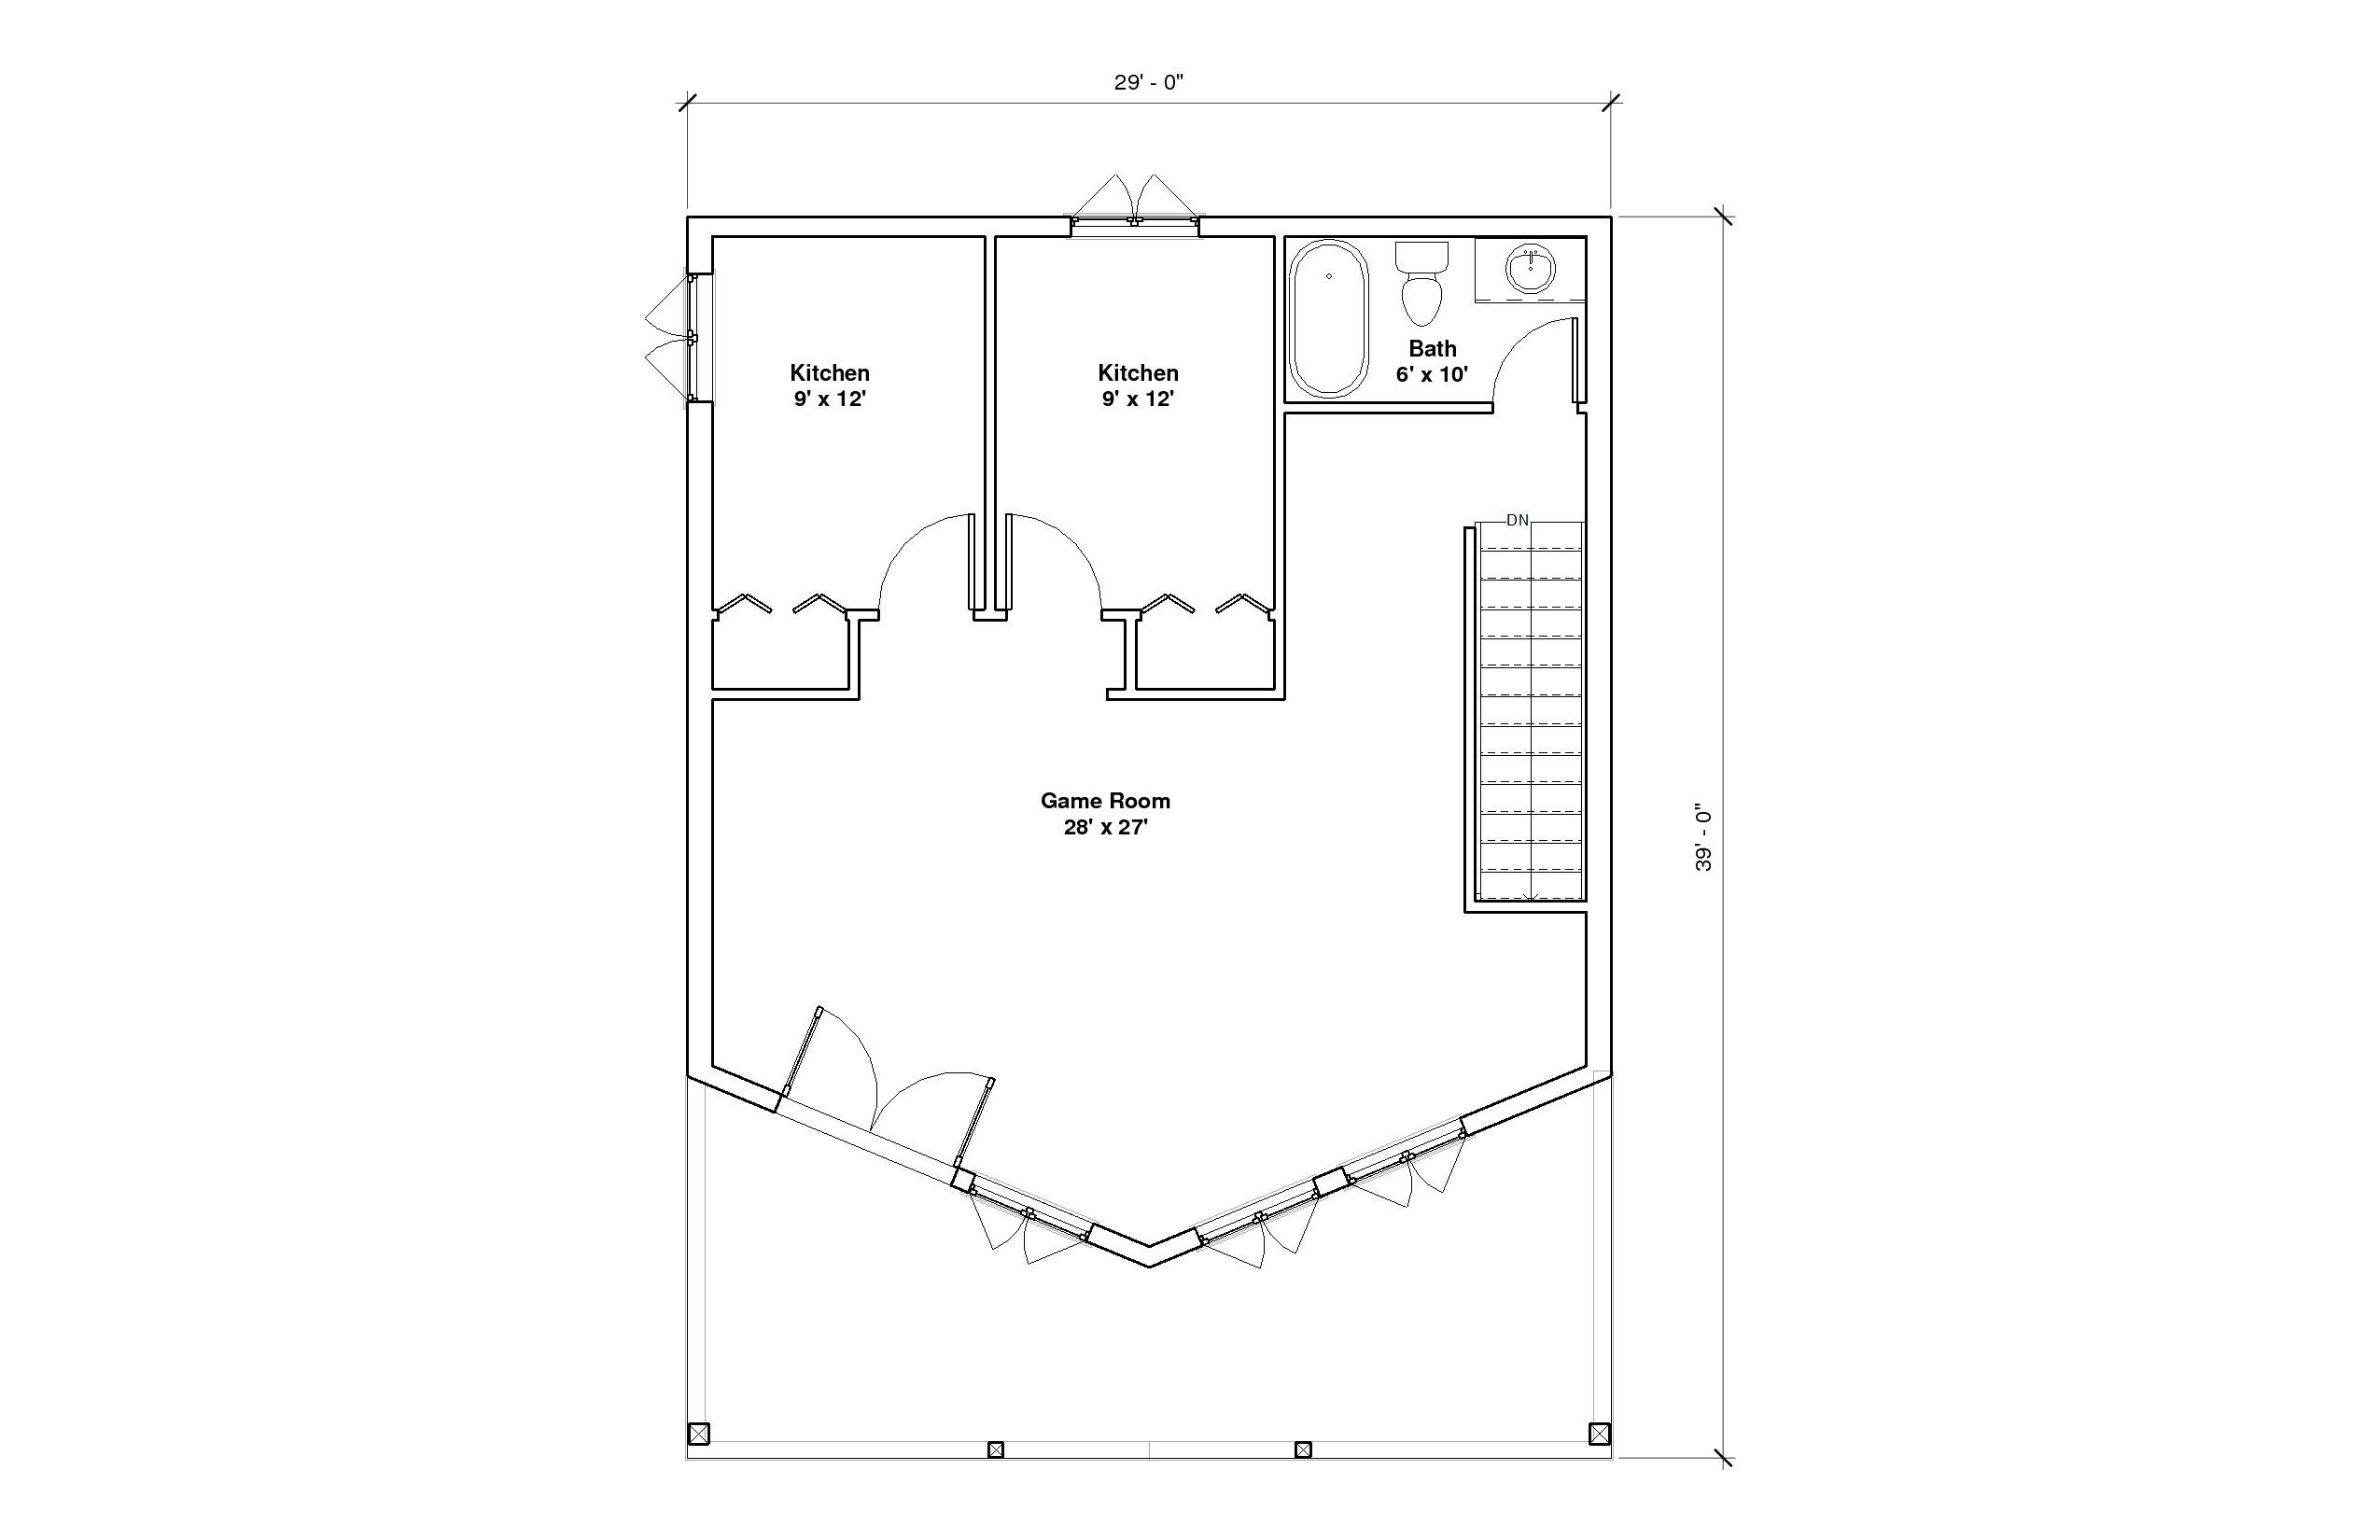 Aspen 3A 2nd Floor plan